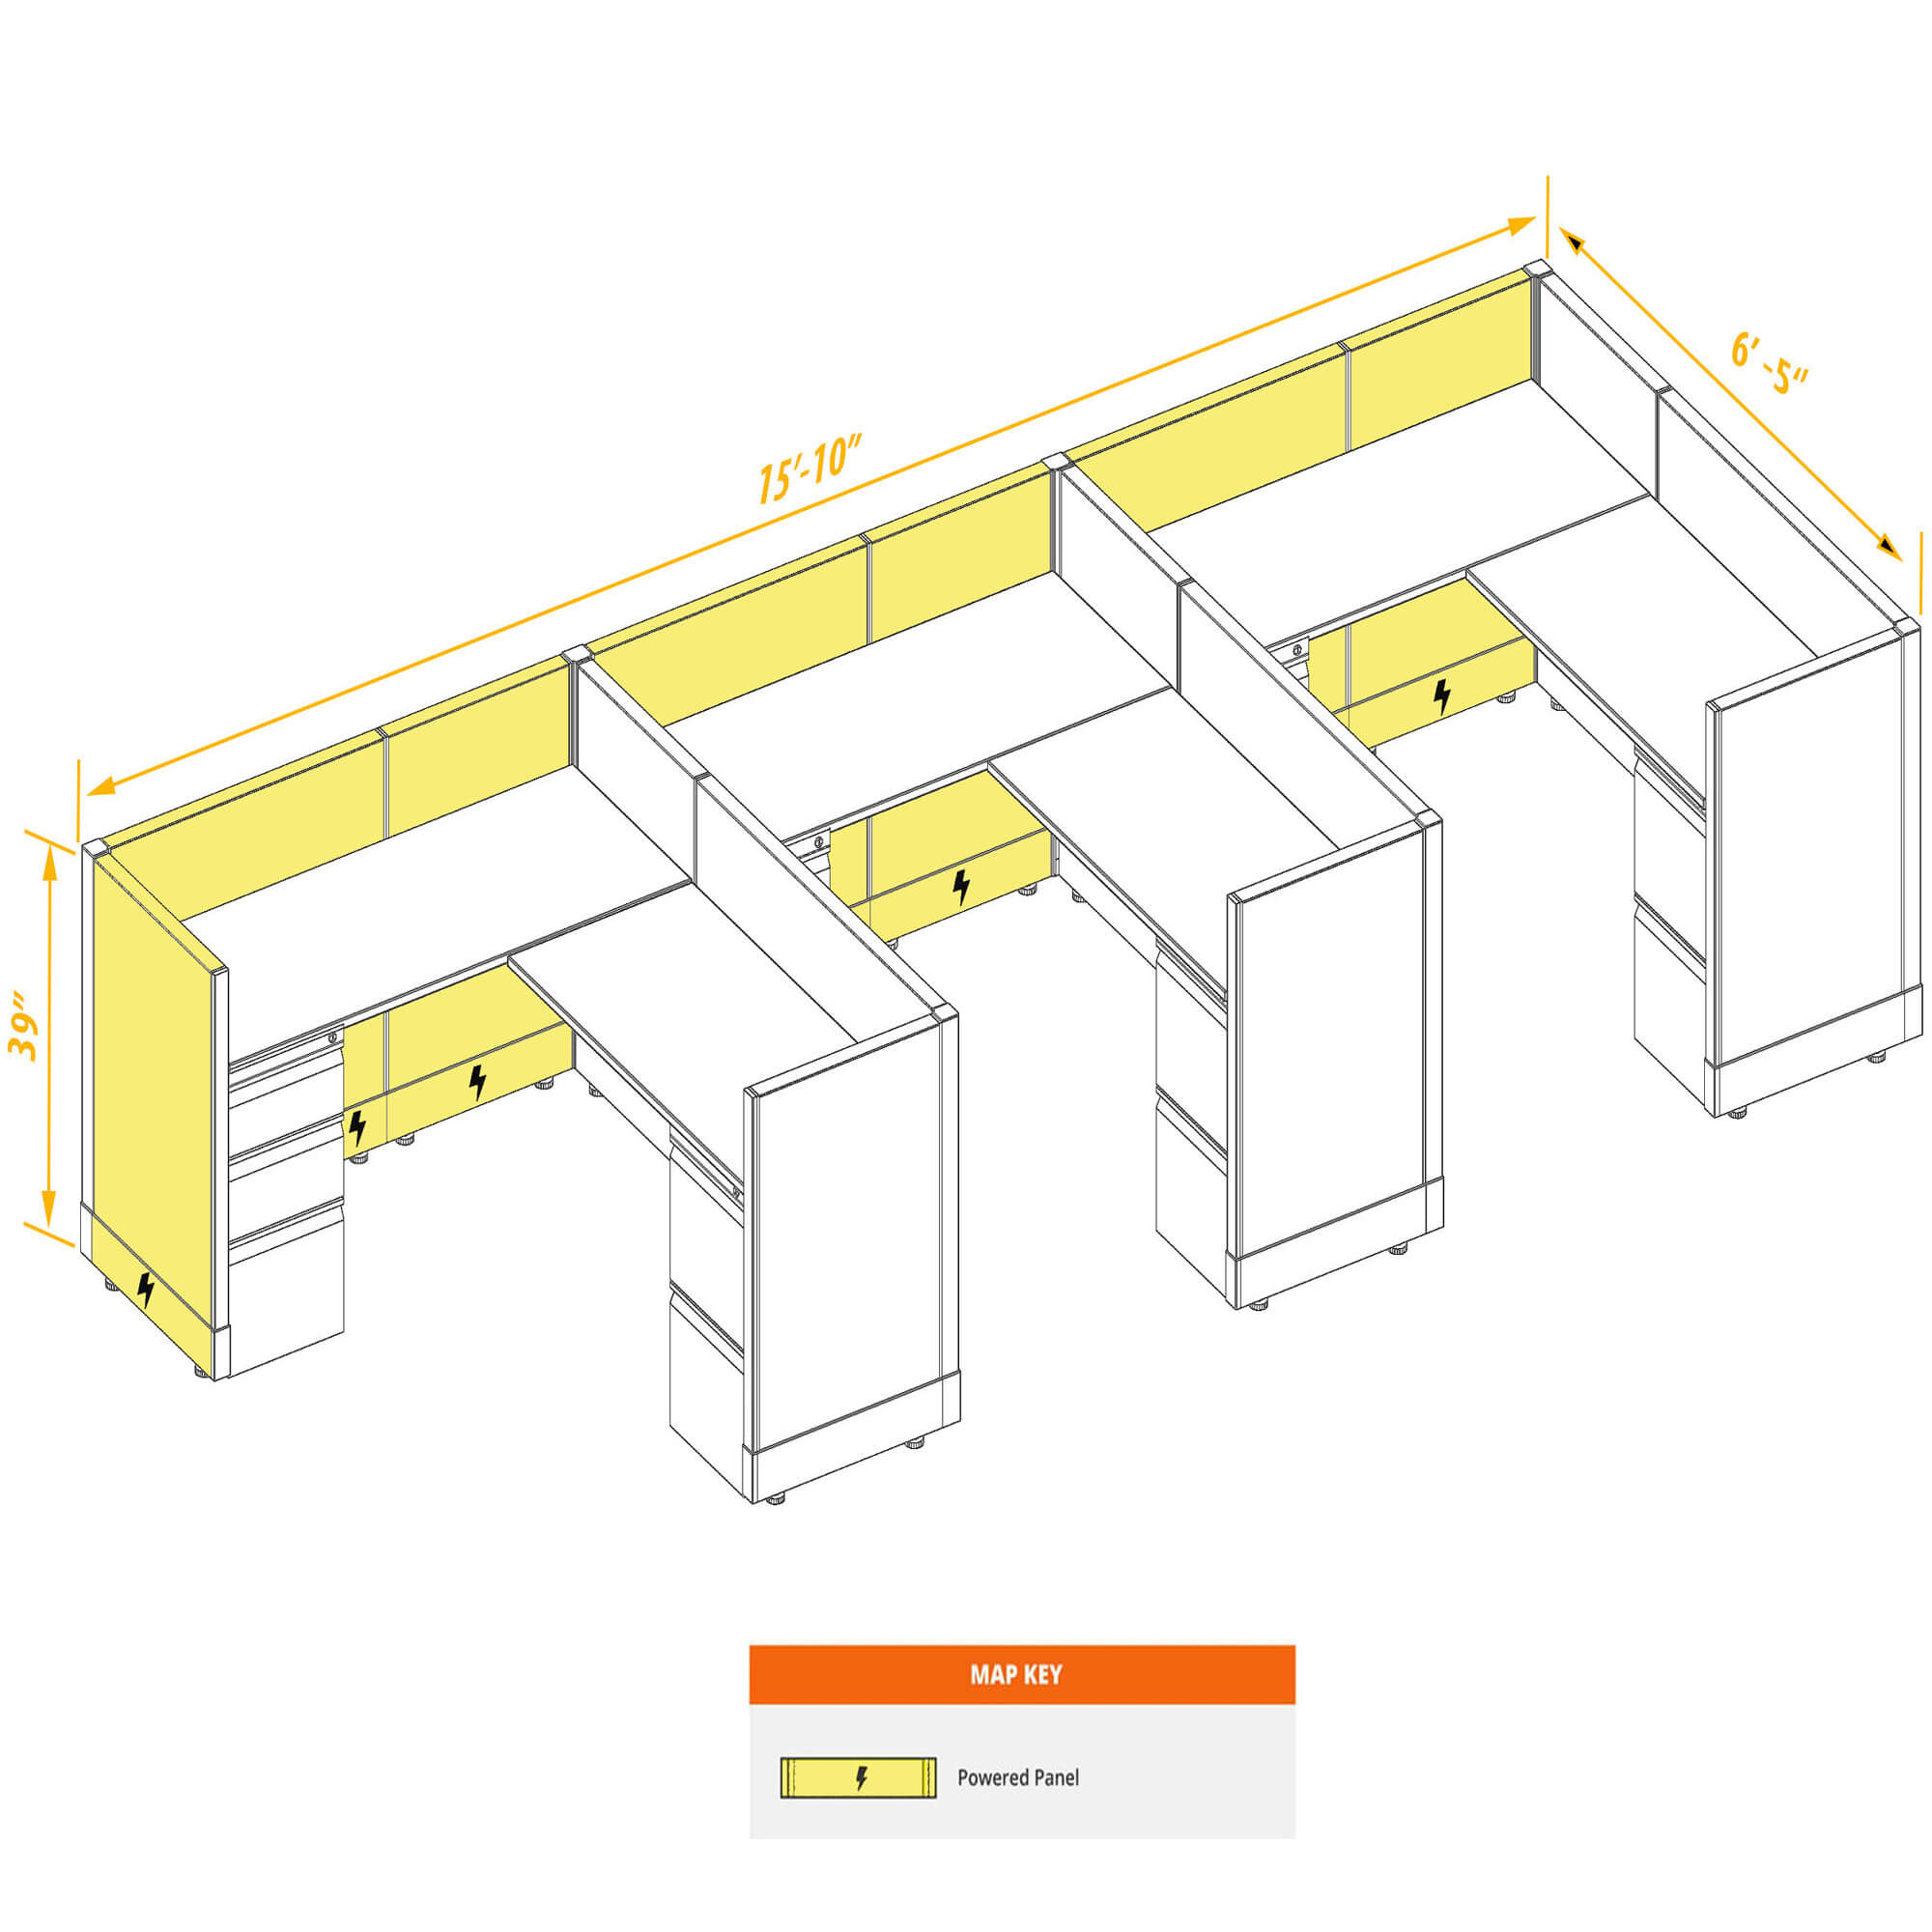 Modular furniture CUB 3 39 P 56 PSO